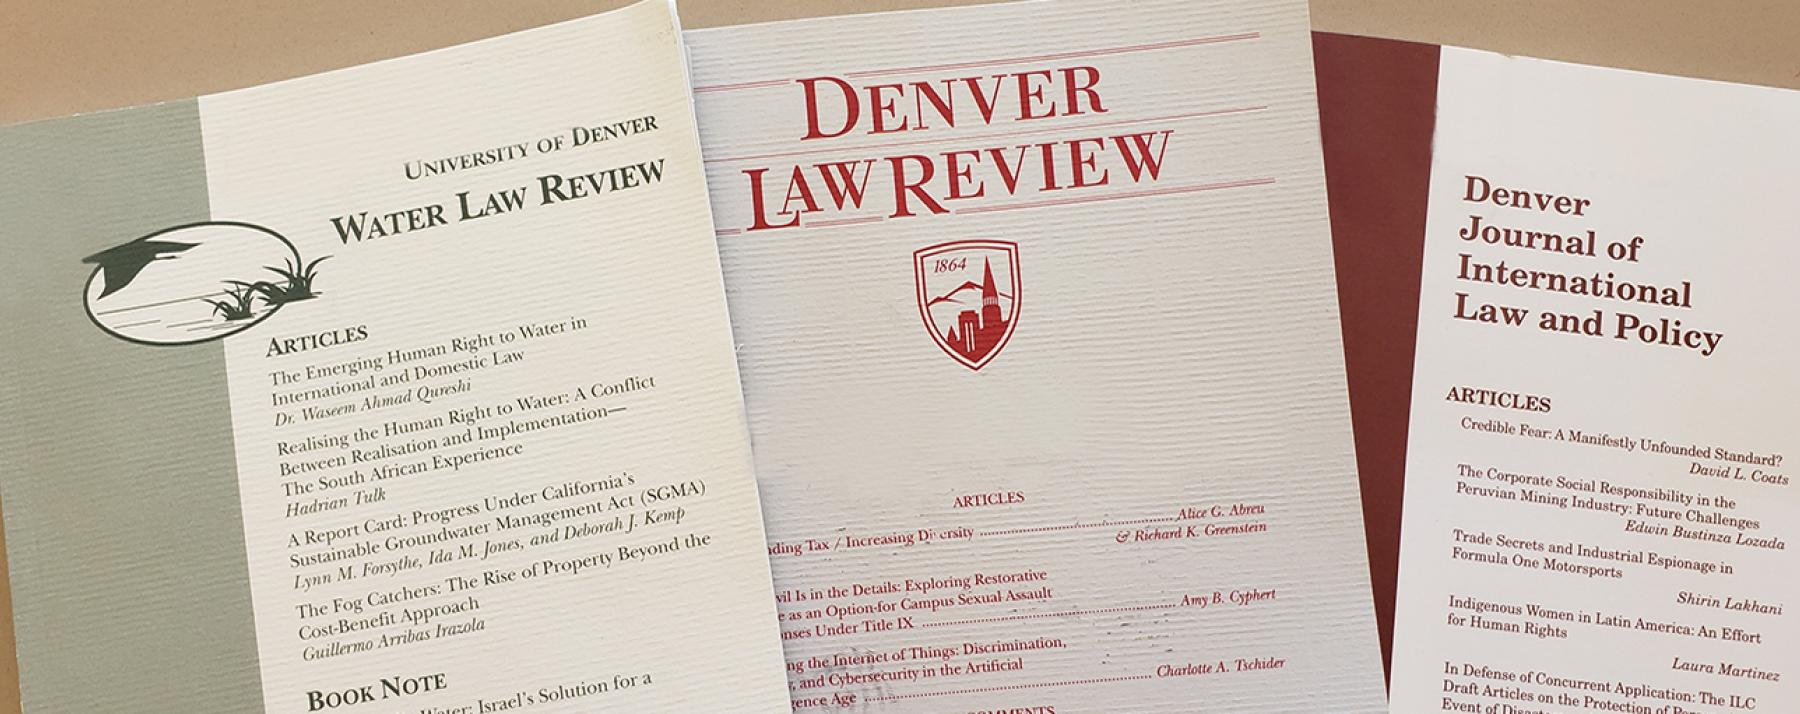 image of Denver law journals and reviews